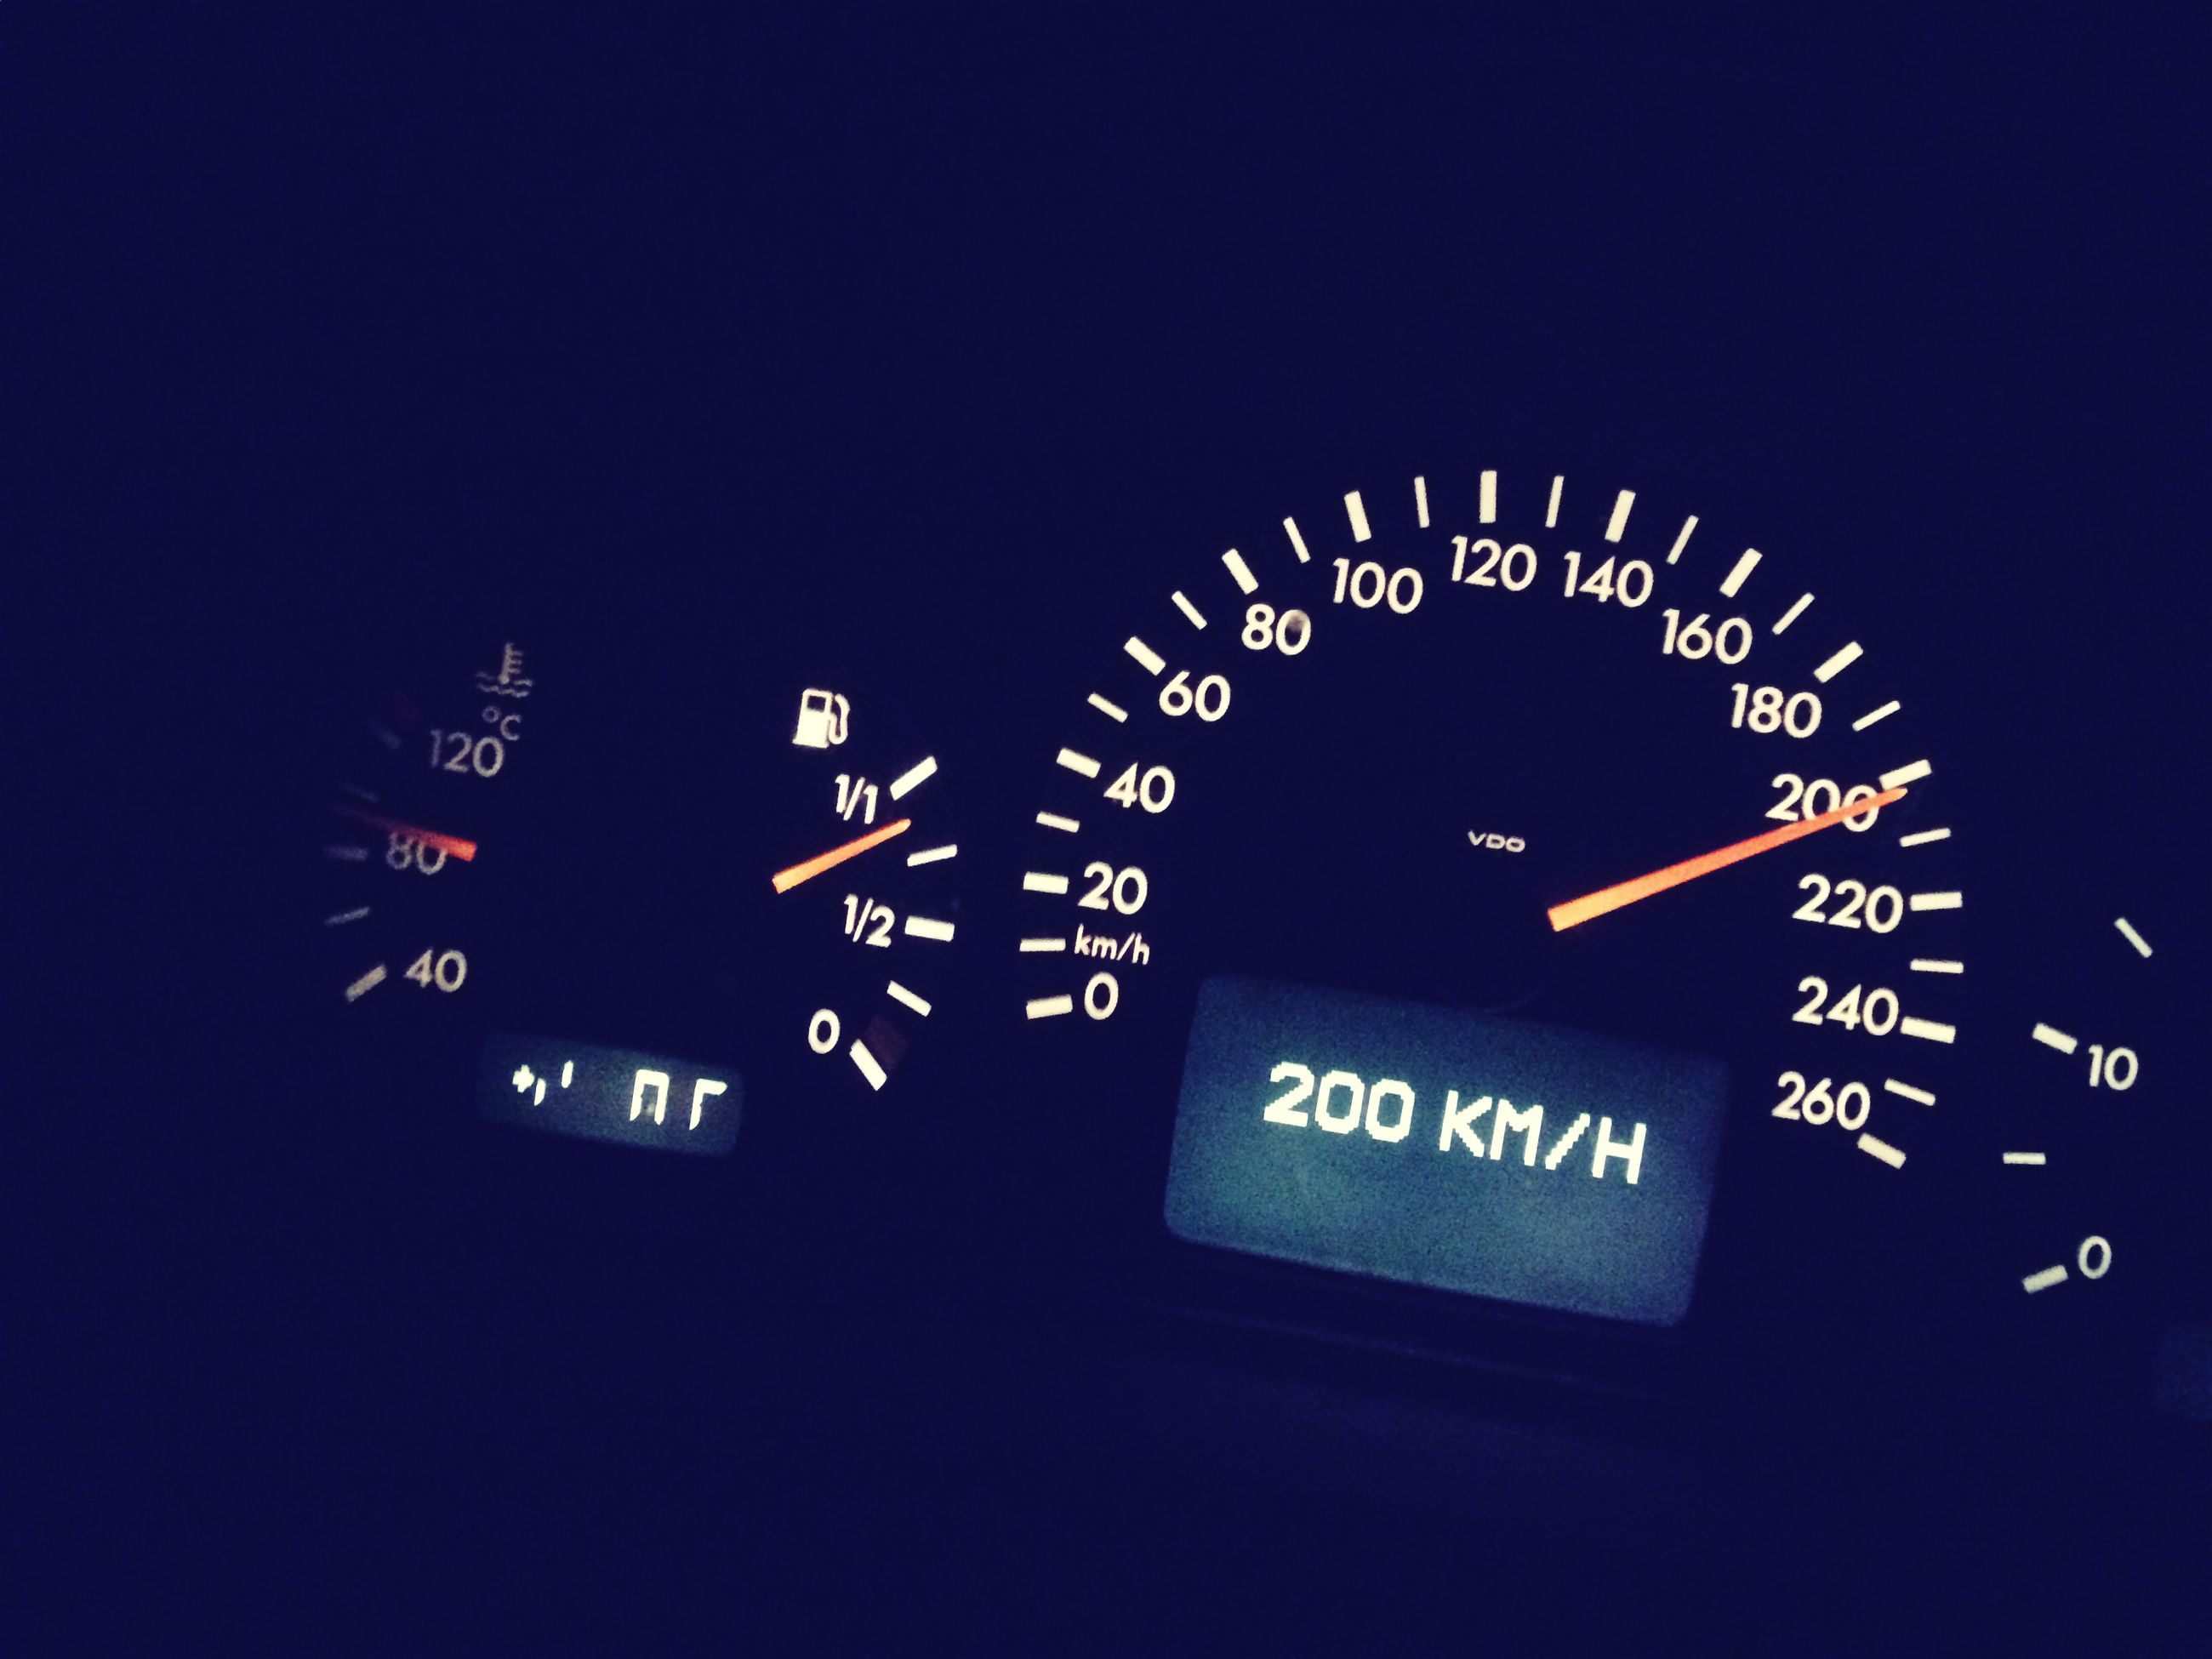 speedometer, transportation, text, number, illuminated, dashboard, no people, mode of transport, night, communication, control panel, land vehicle, car, blue, gauge, close-up, technology, outdoors